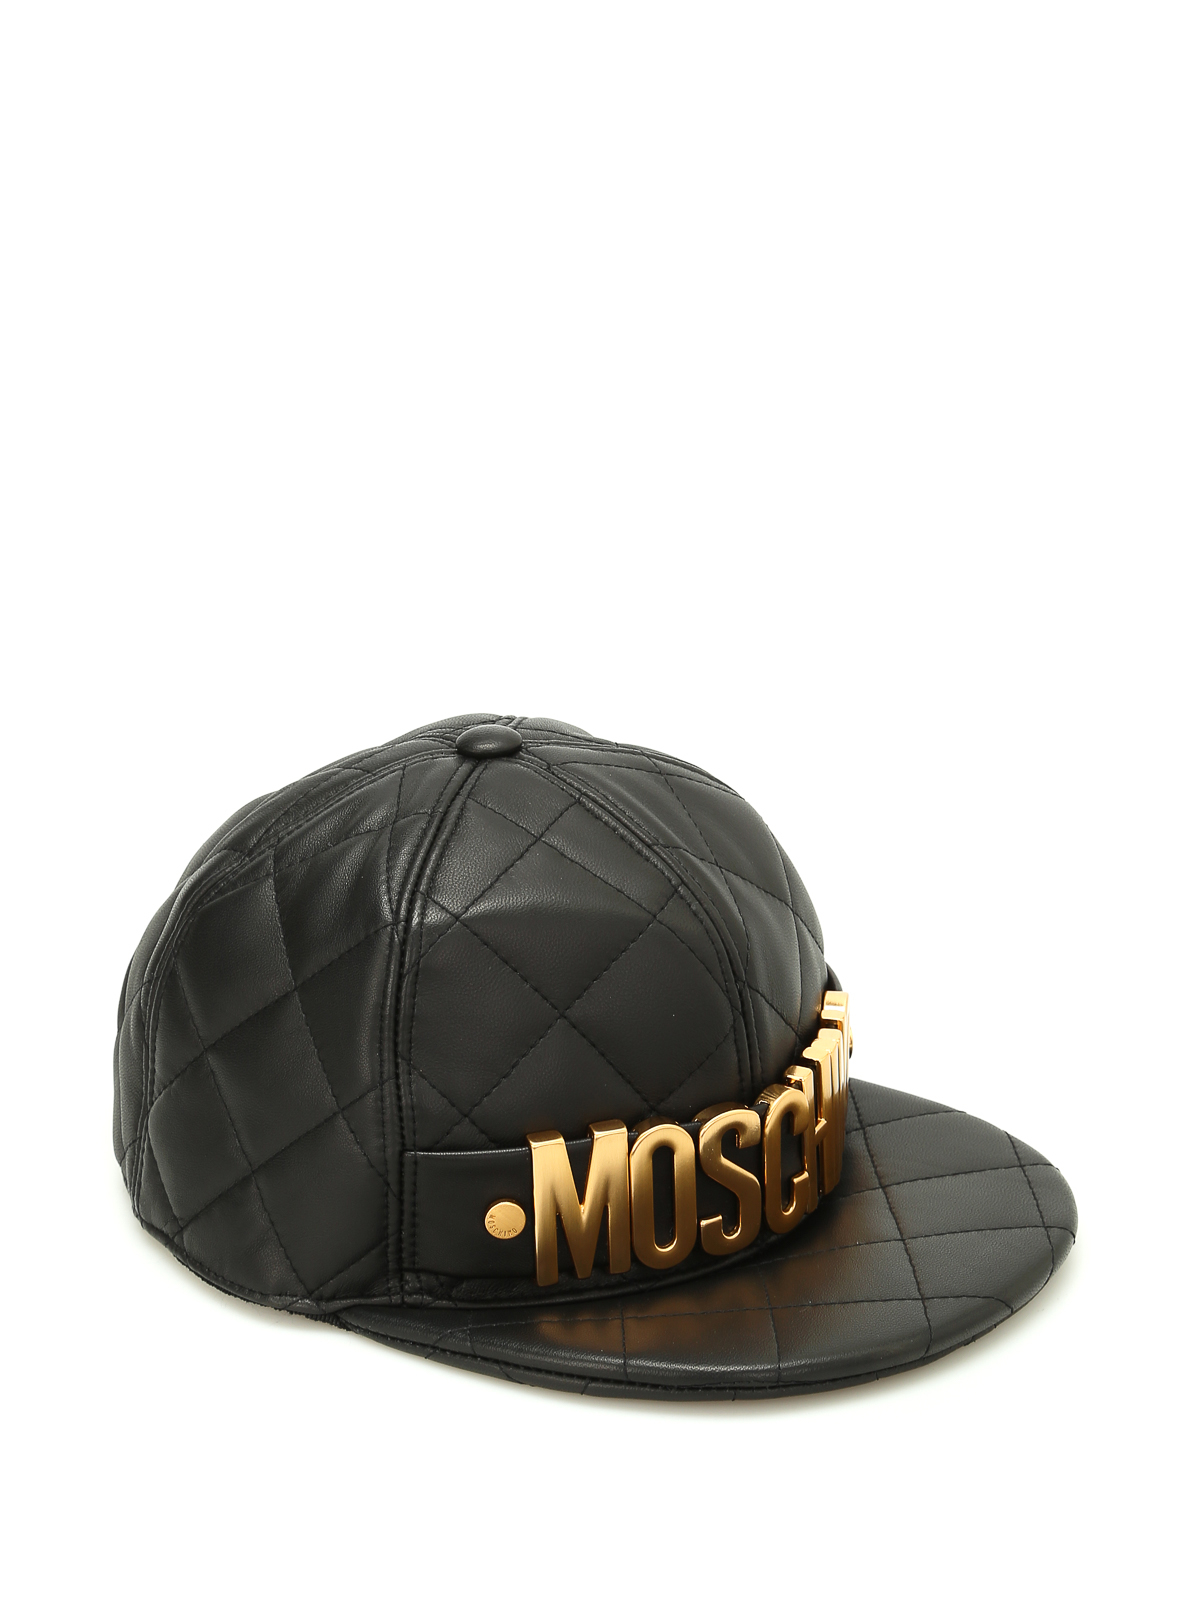 Moschino - Gold logo quilted leather hat - hats   caps - 7A920180021555 24463c1259c1